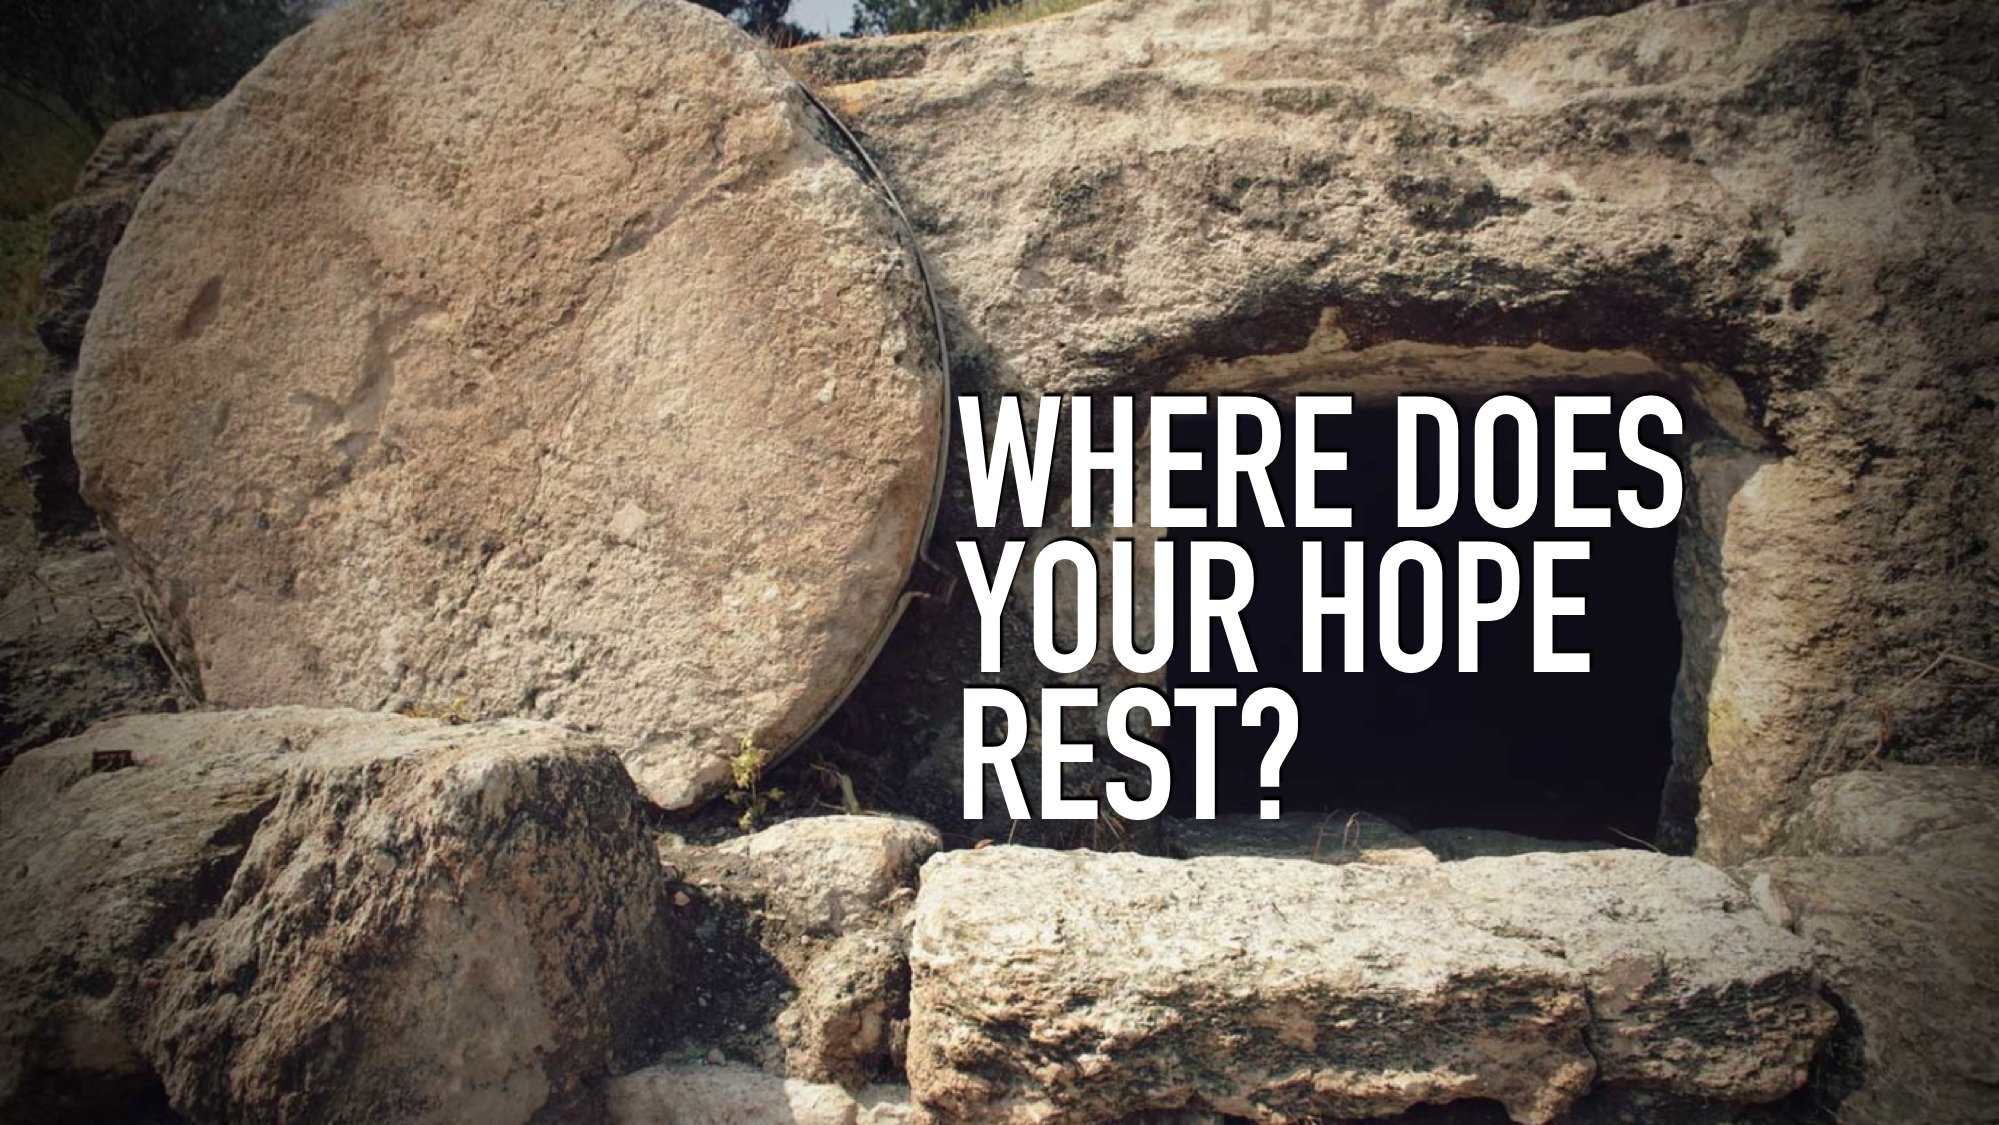 Where Does Your Hope Rest?